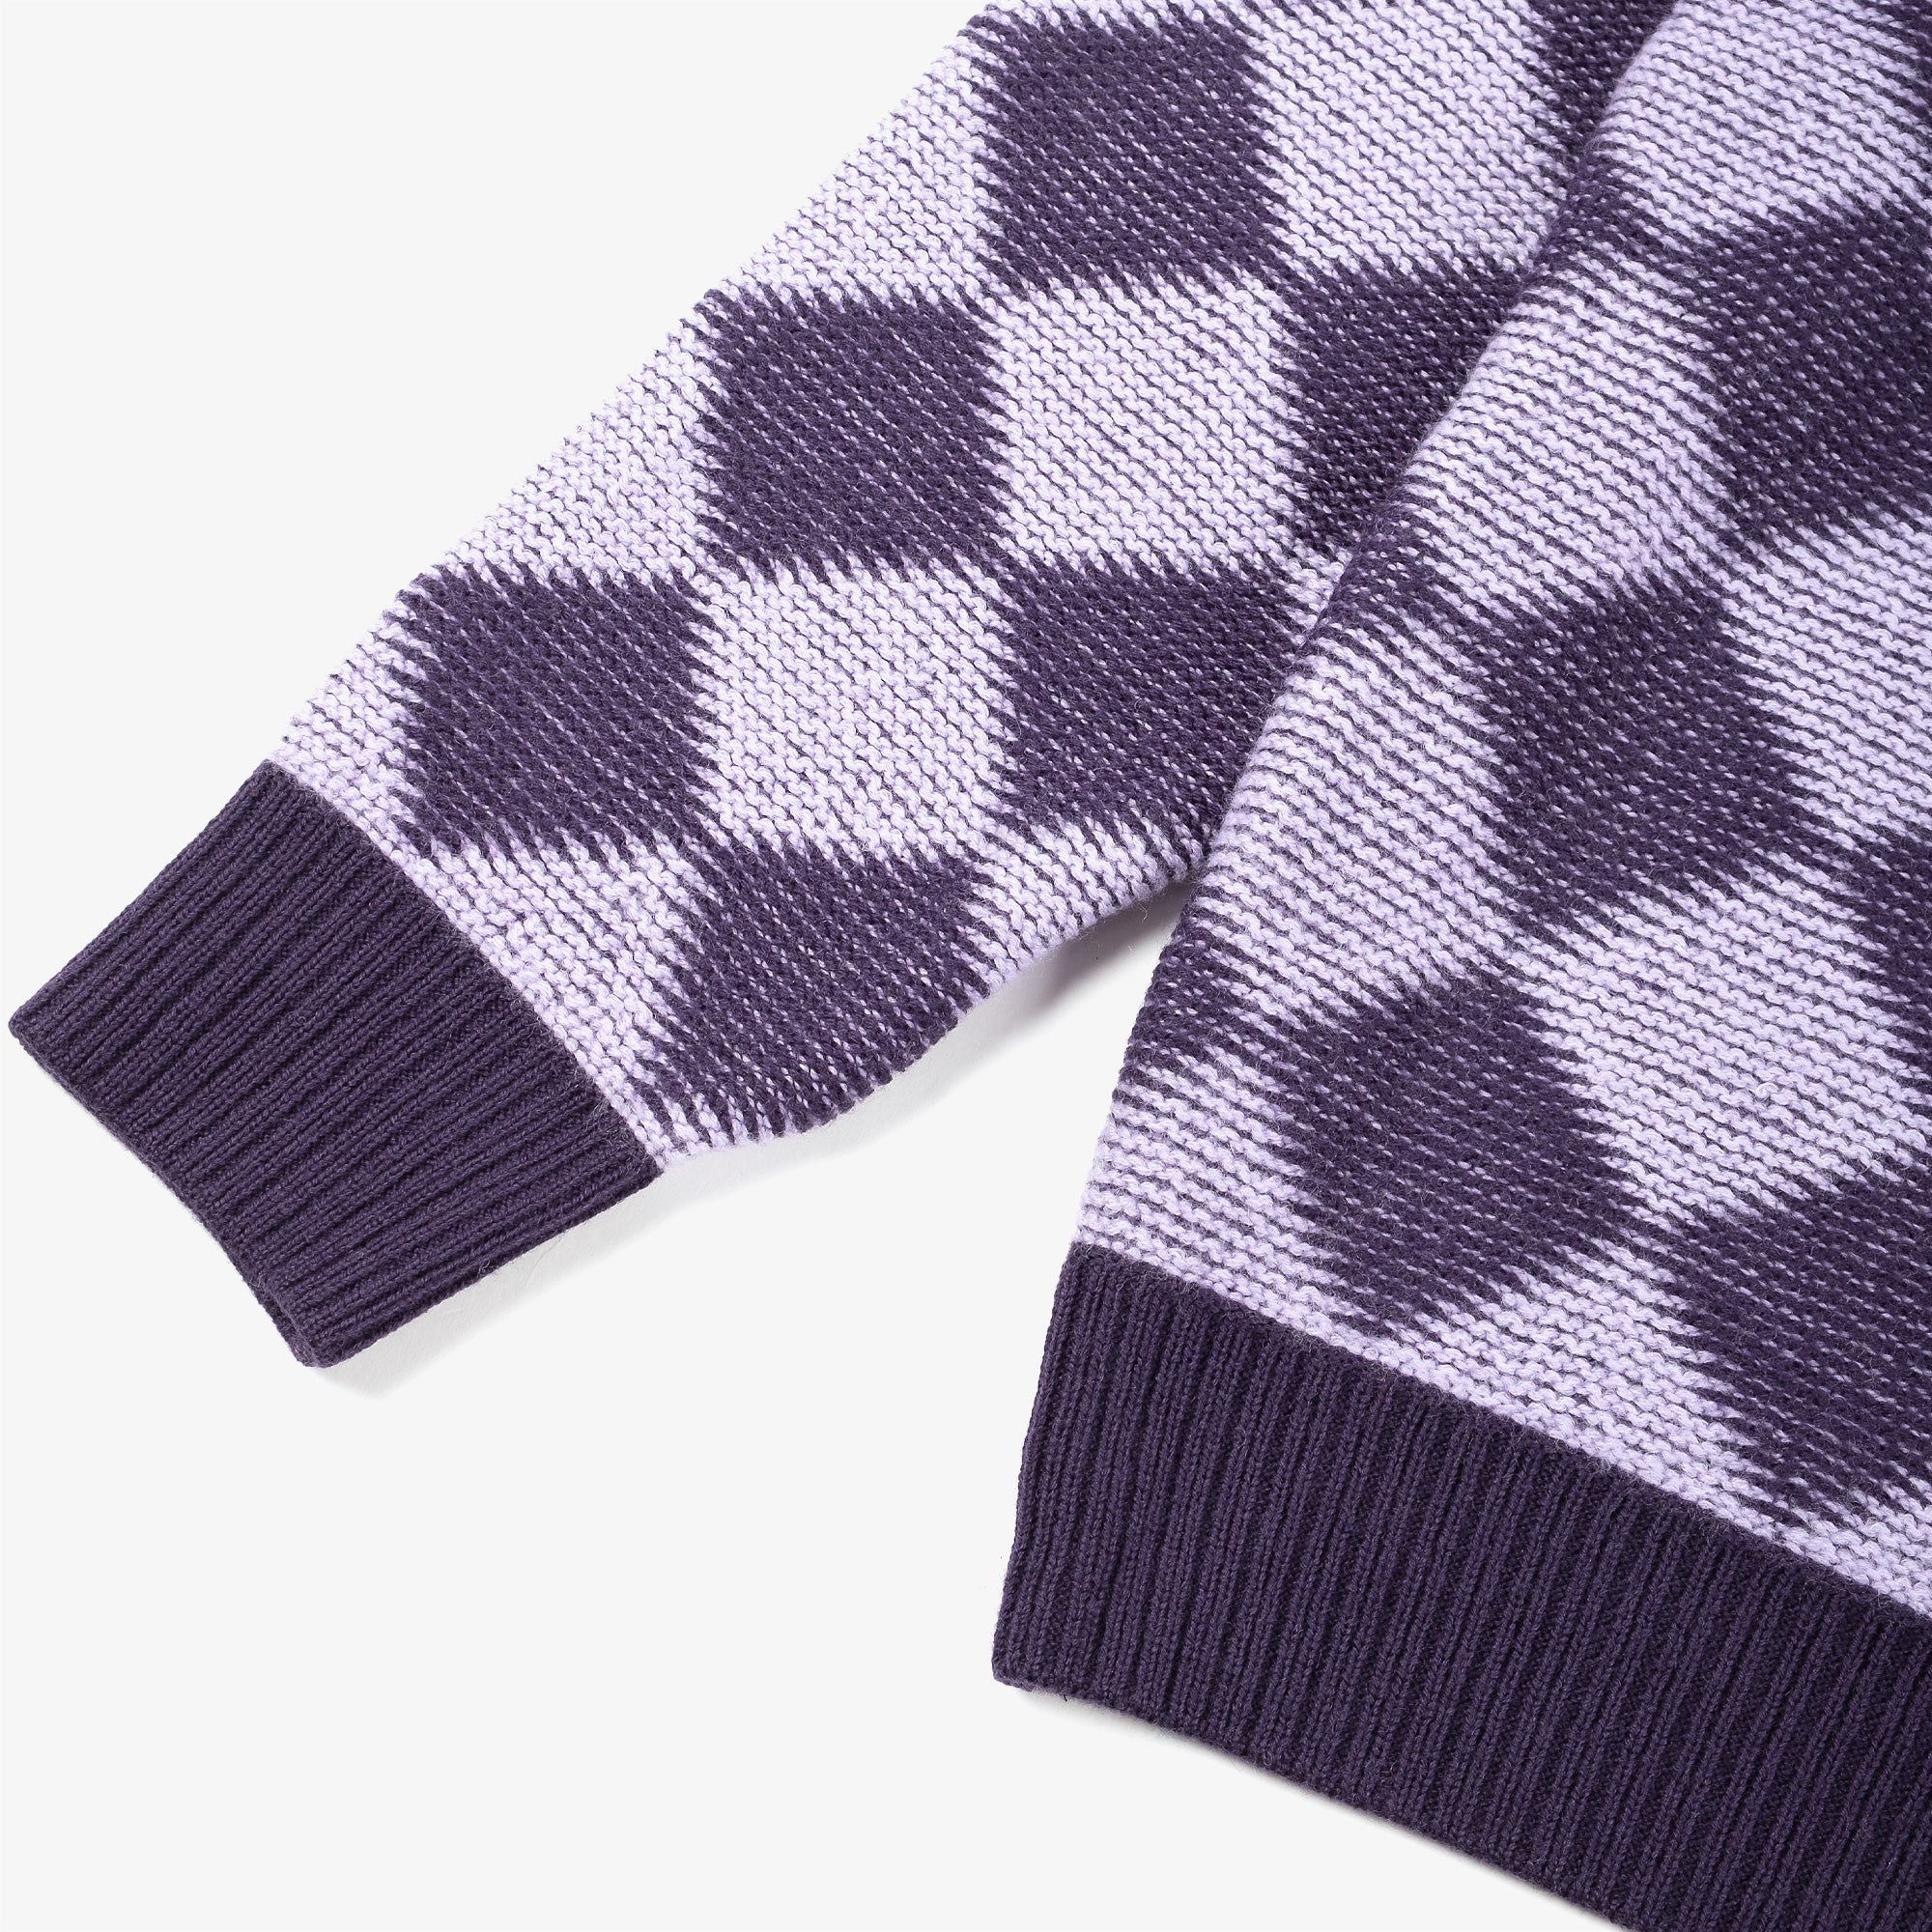 Needles M' Polo Sweater Checkered - Purple 3